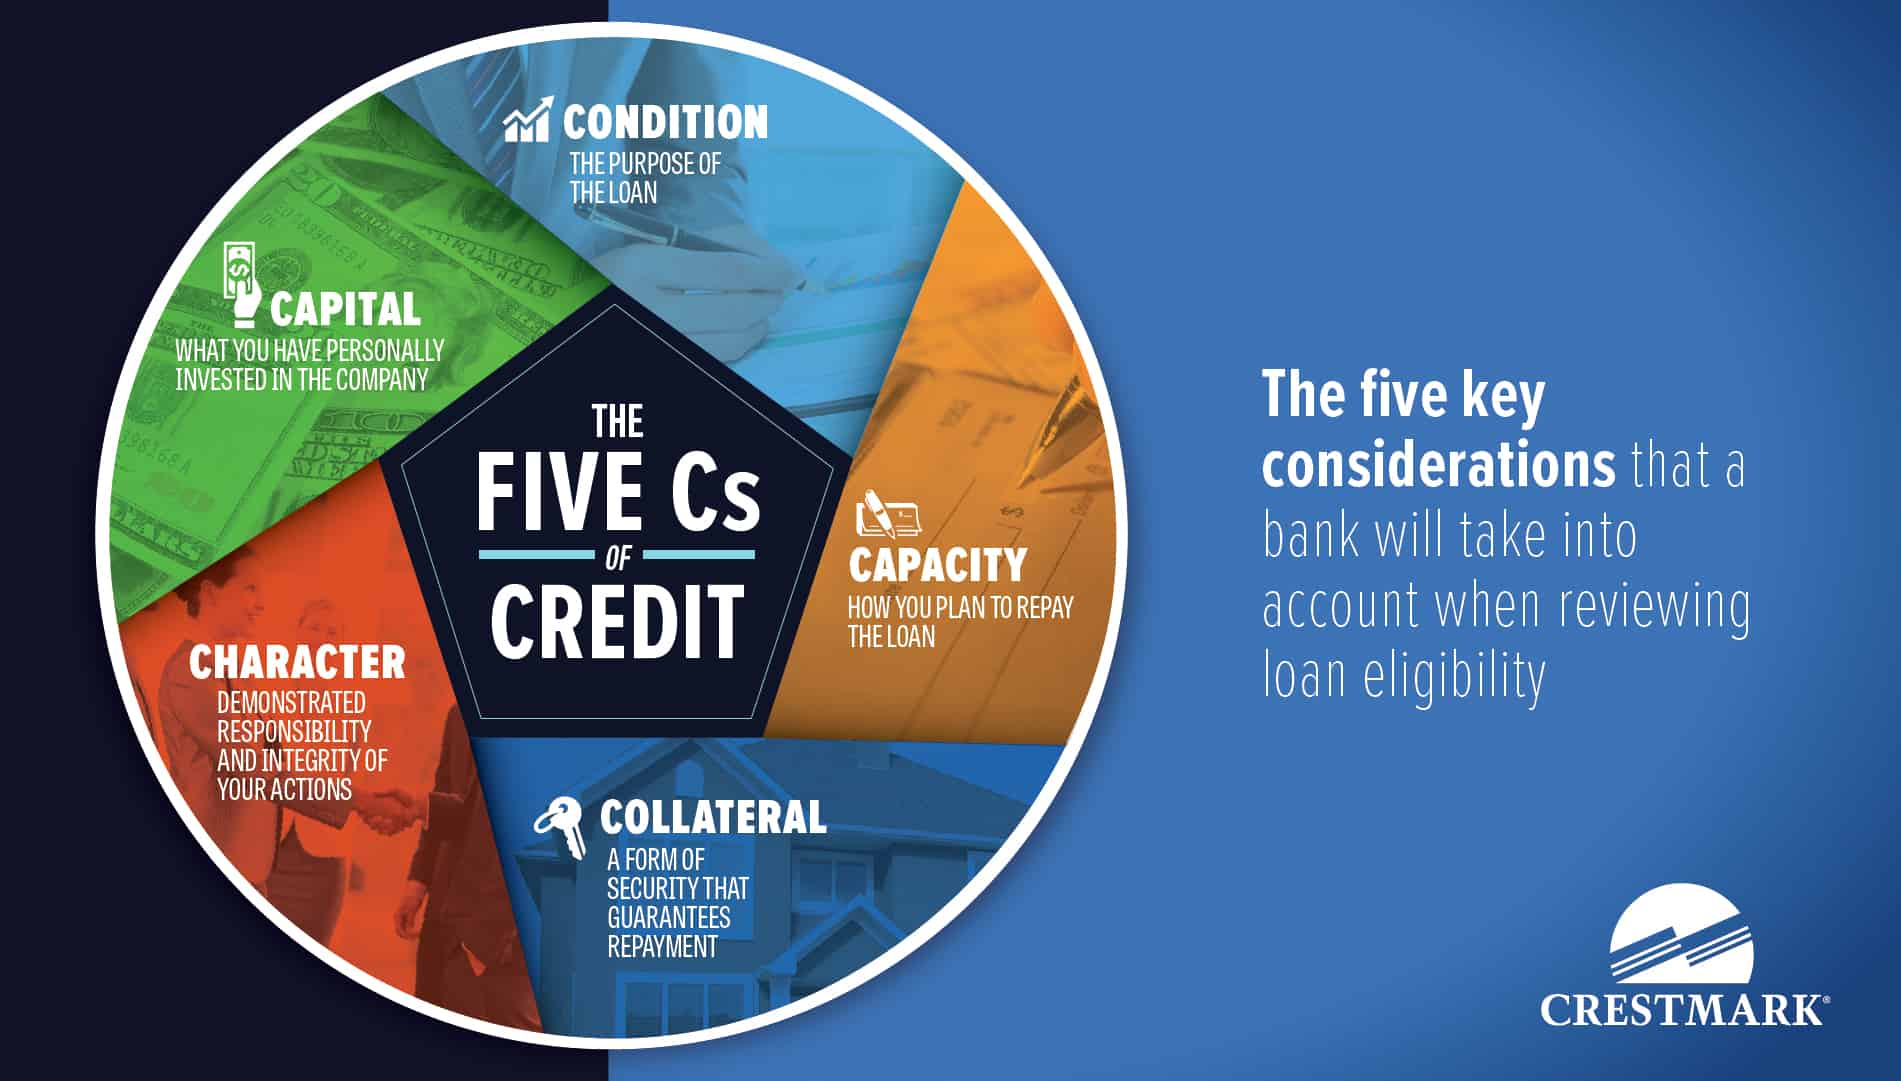 5Cs of credit